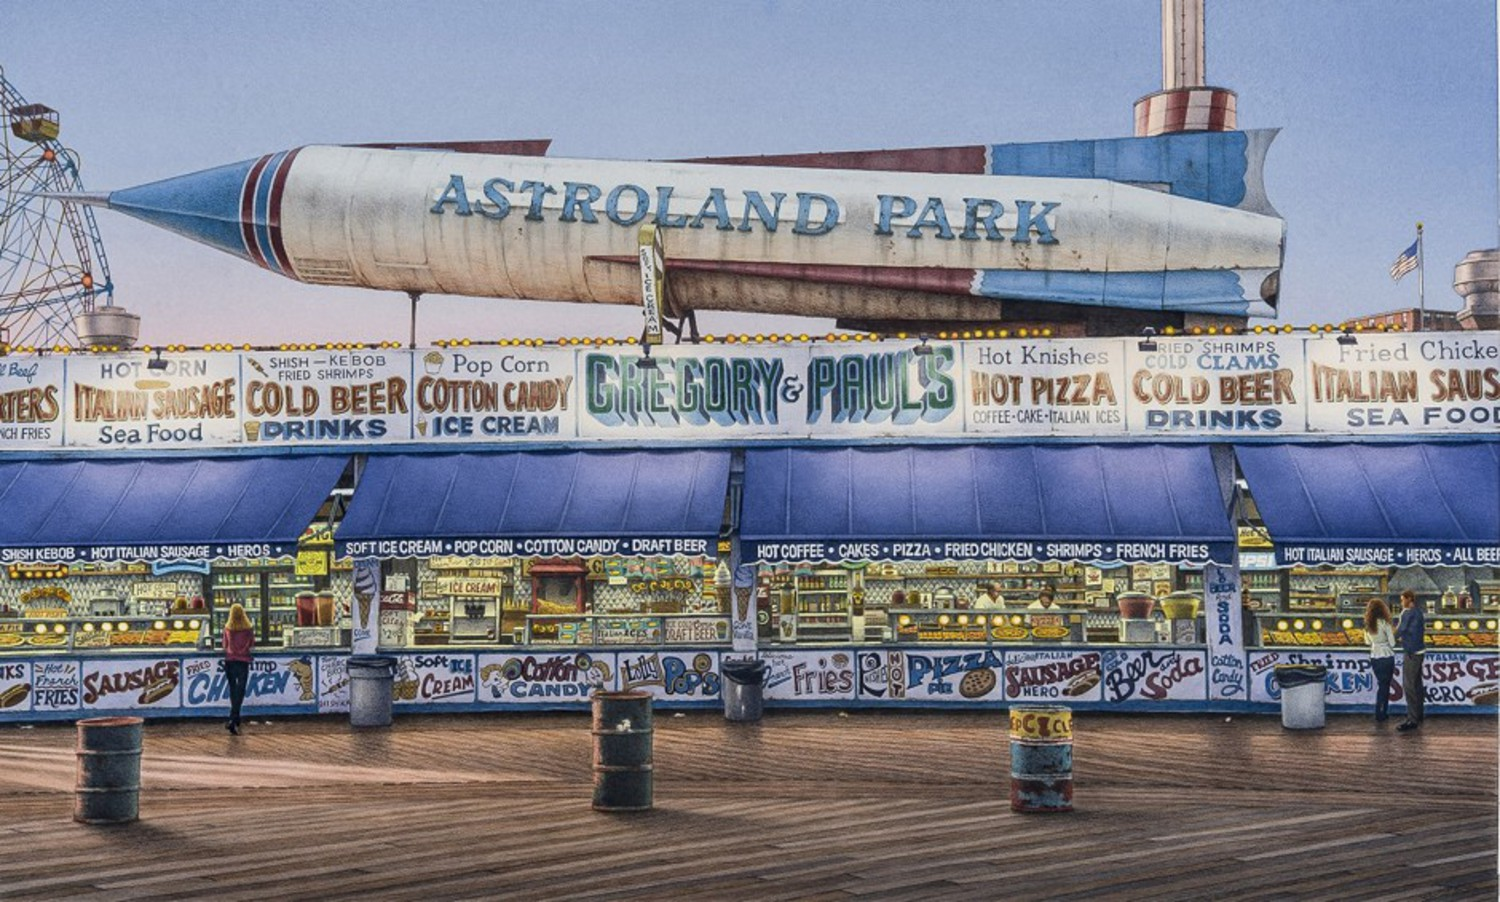 Frederick Brosen, Astroland, 2008–13, watercolor over graphite on paper, Courtesy of Hirschl & Adler Modern, New York. Photograph by Joshua Nefsky; Image courtesy of Hirschl & Adler Modern, New York; © 2013 Frederick Brosen/Artists Rights Society (ARS), New York